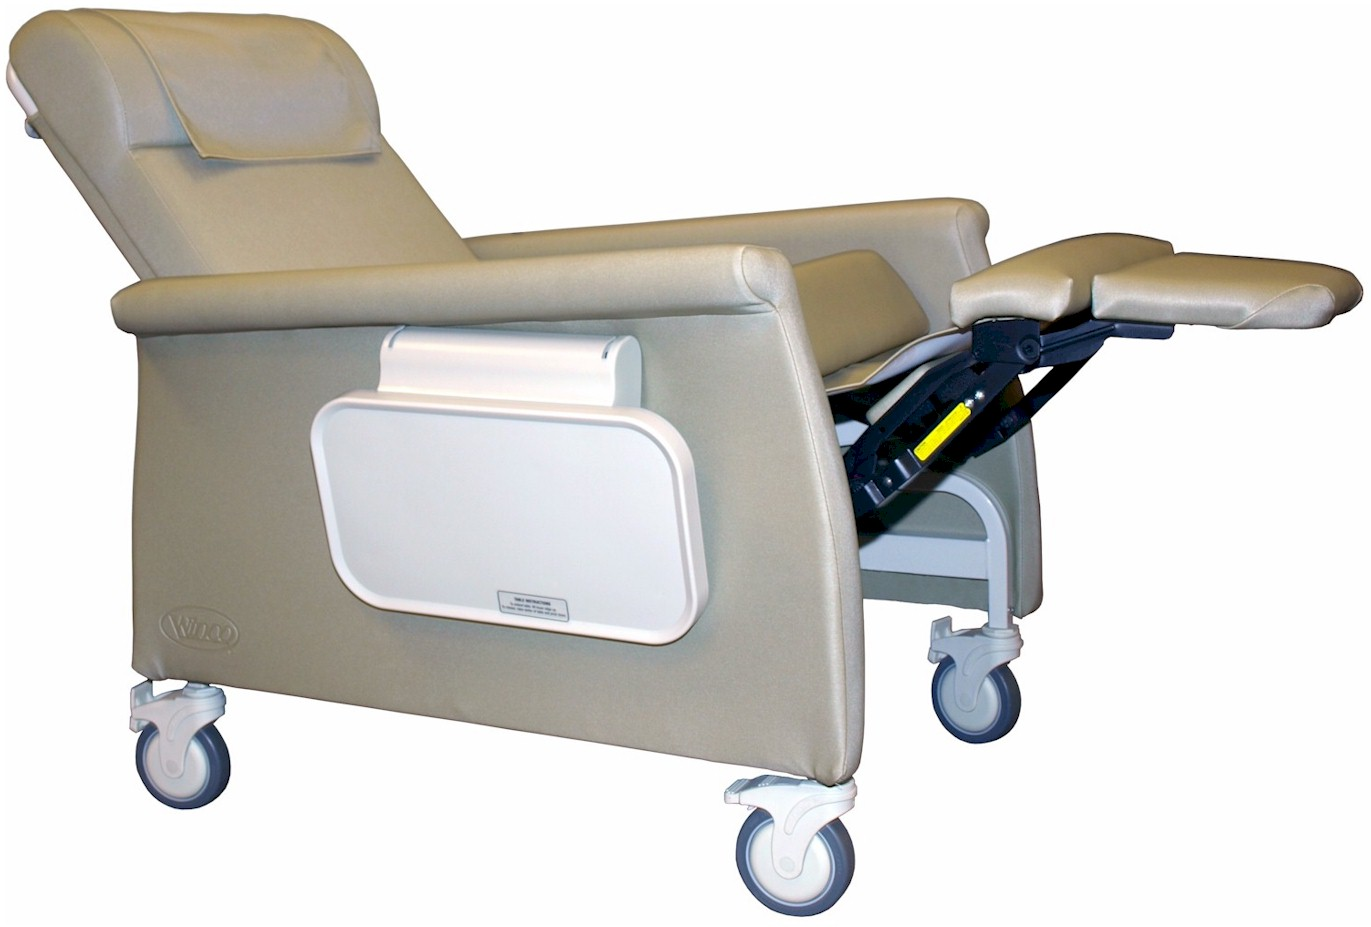 Winco 6900 Medical Recliner  sc 1 st  Medical Recliners by KindCare Medical Seating - WordPress.com & Dialysis Chairs | Dialysis Chair | Medical Recliners by KindCare ... islam-shia.org